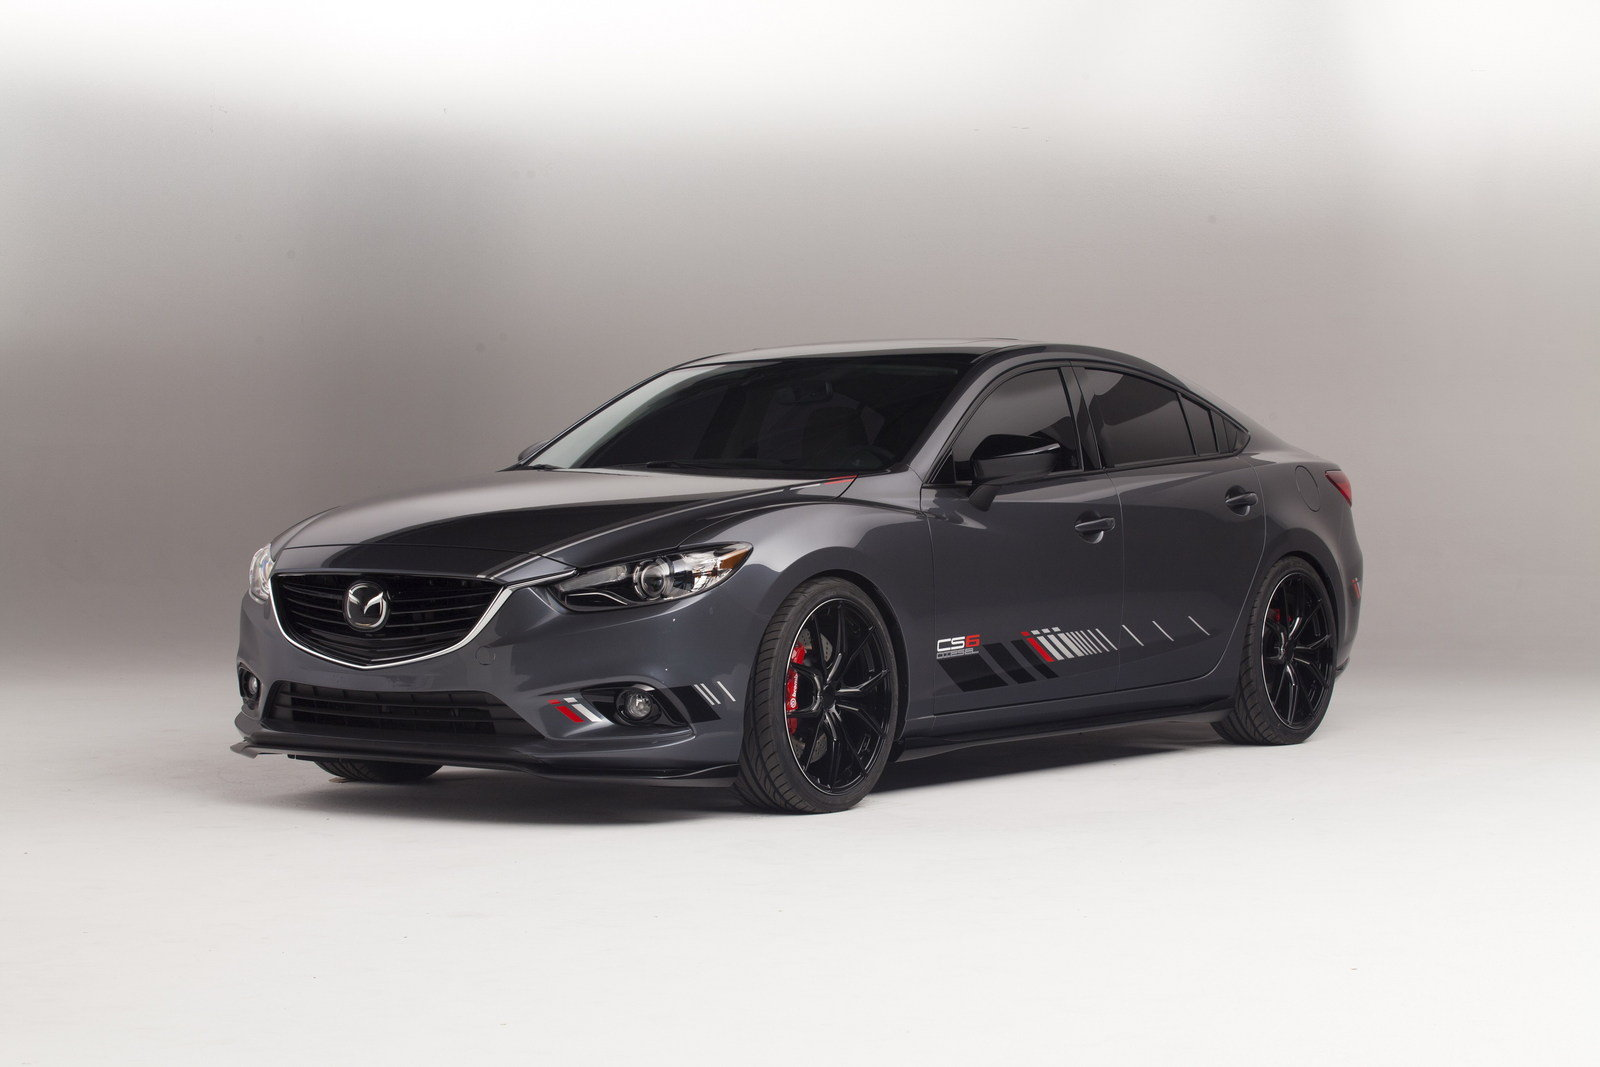 2014 mazda club sport 6 concept review top speed. Black Bedroom Furniture Sets. Home Design Ideas